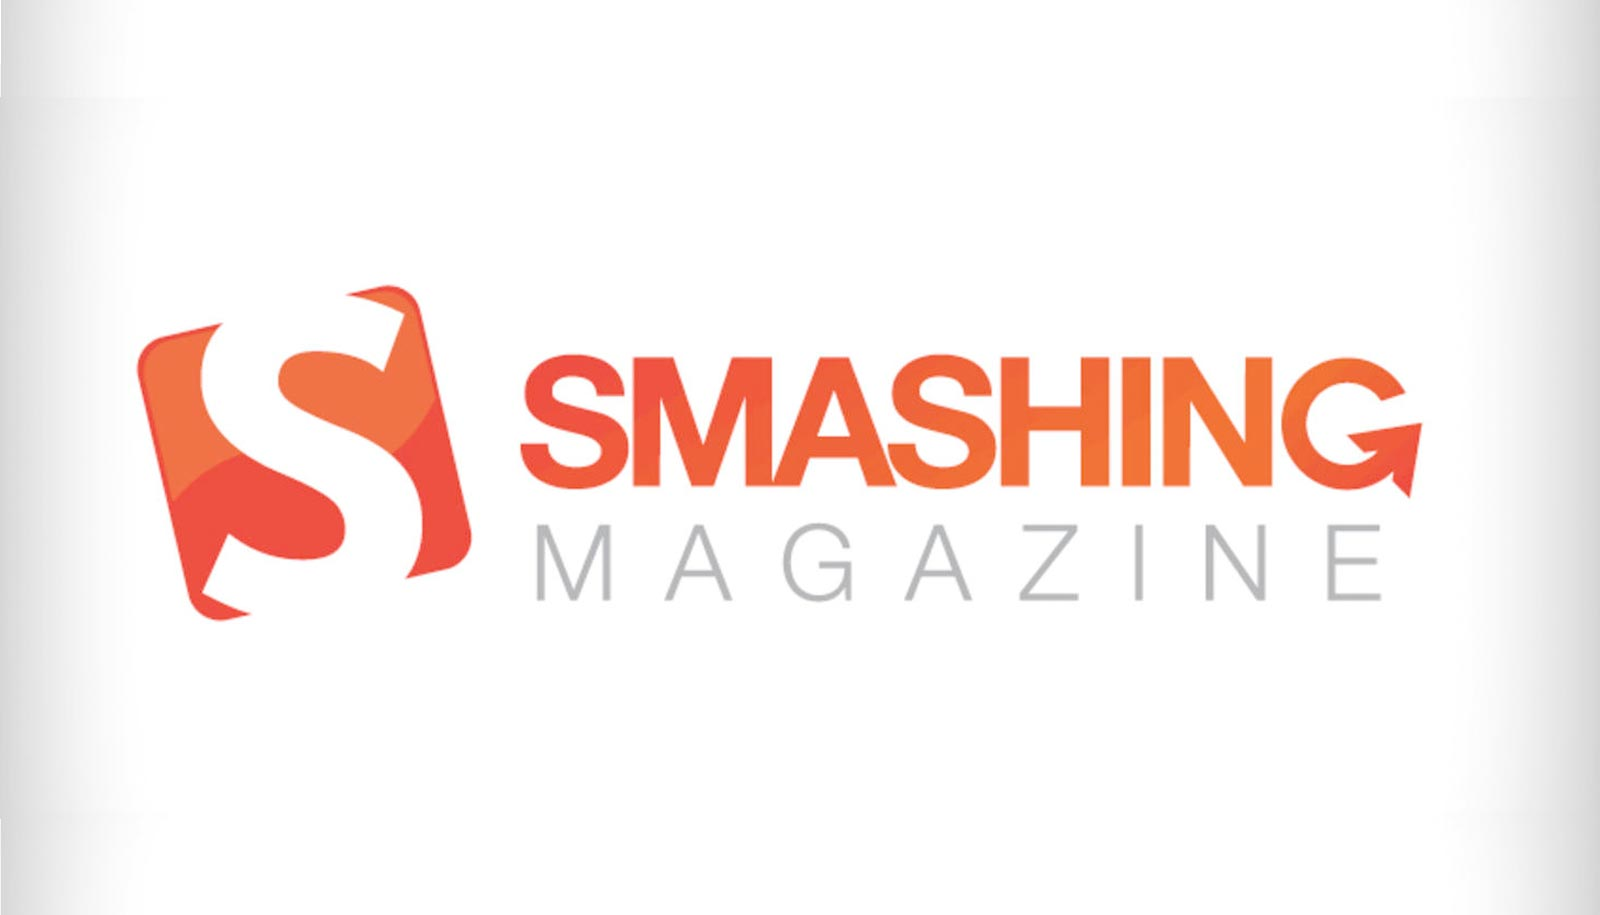 smashing magazine inspiration